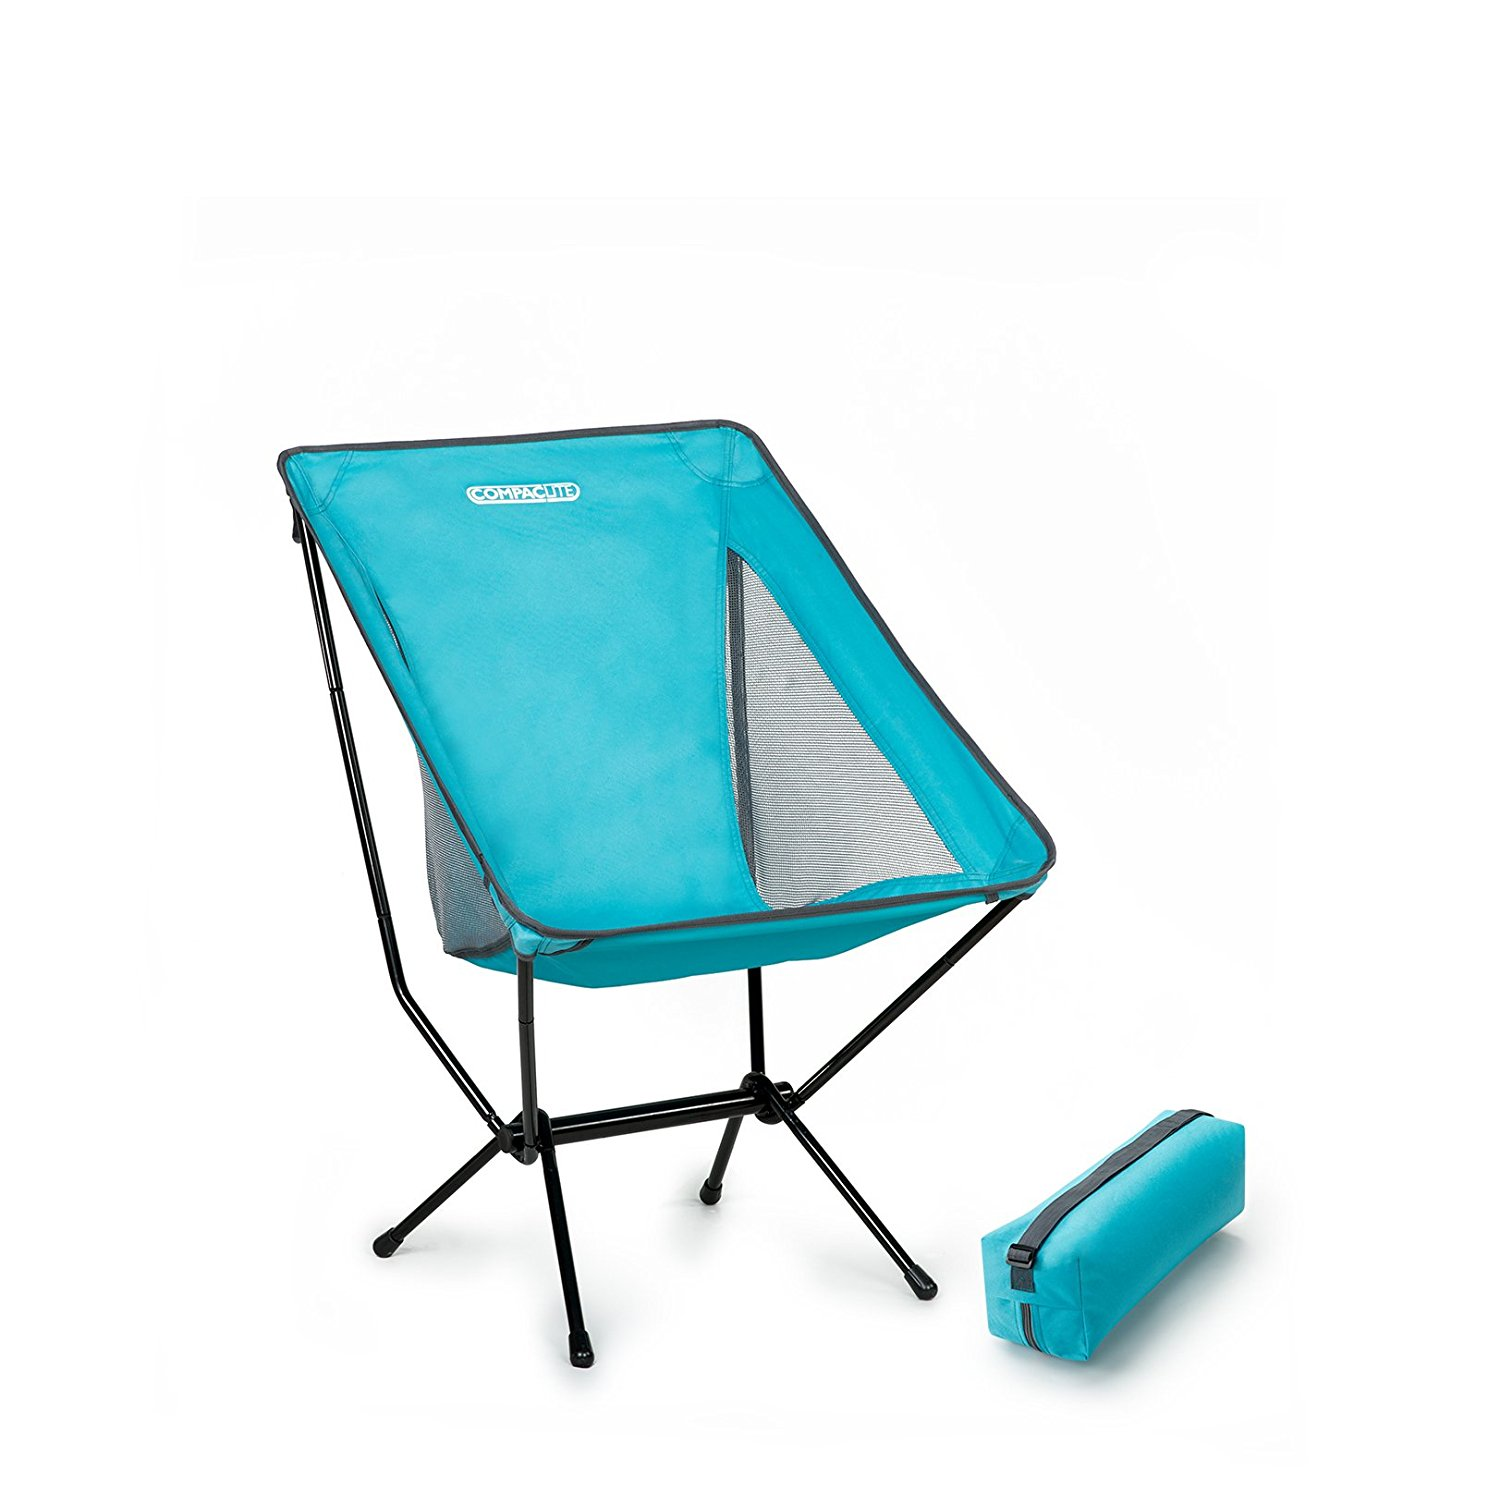 Compaclite Deluxe Steel Camping Portable Chair